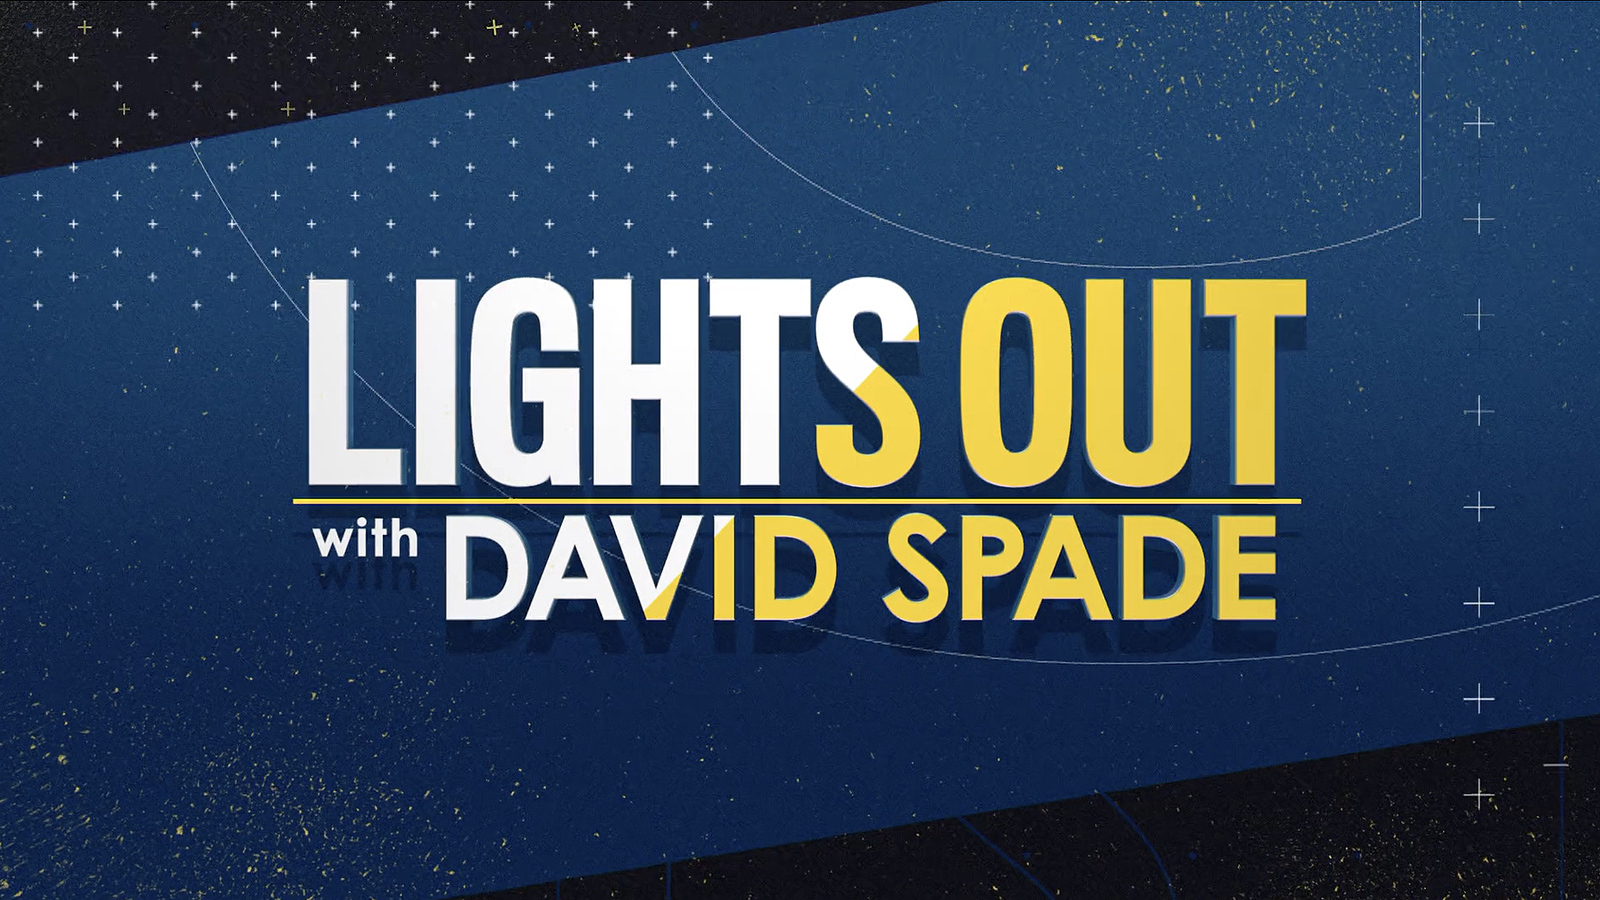 NCS_Comedy-Central_David-Spade_LightsOut_Motion-Graphics_008